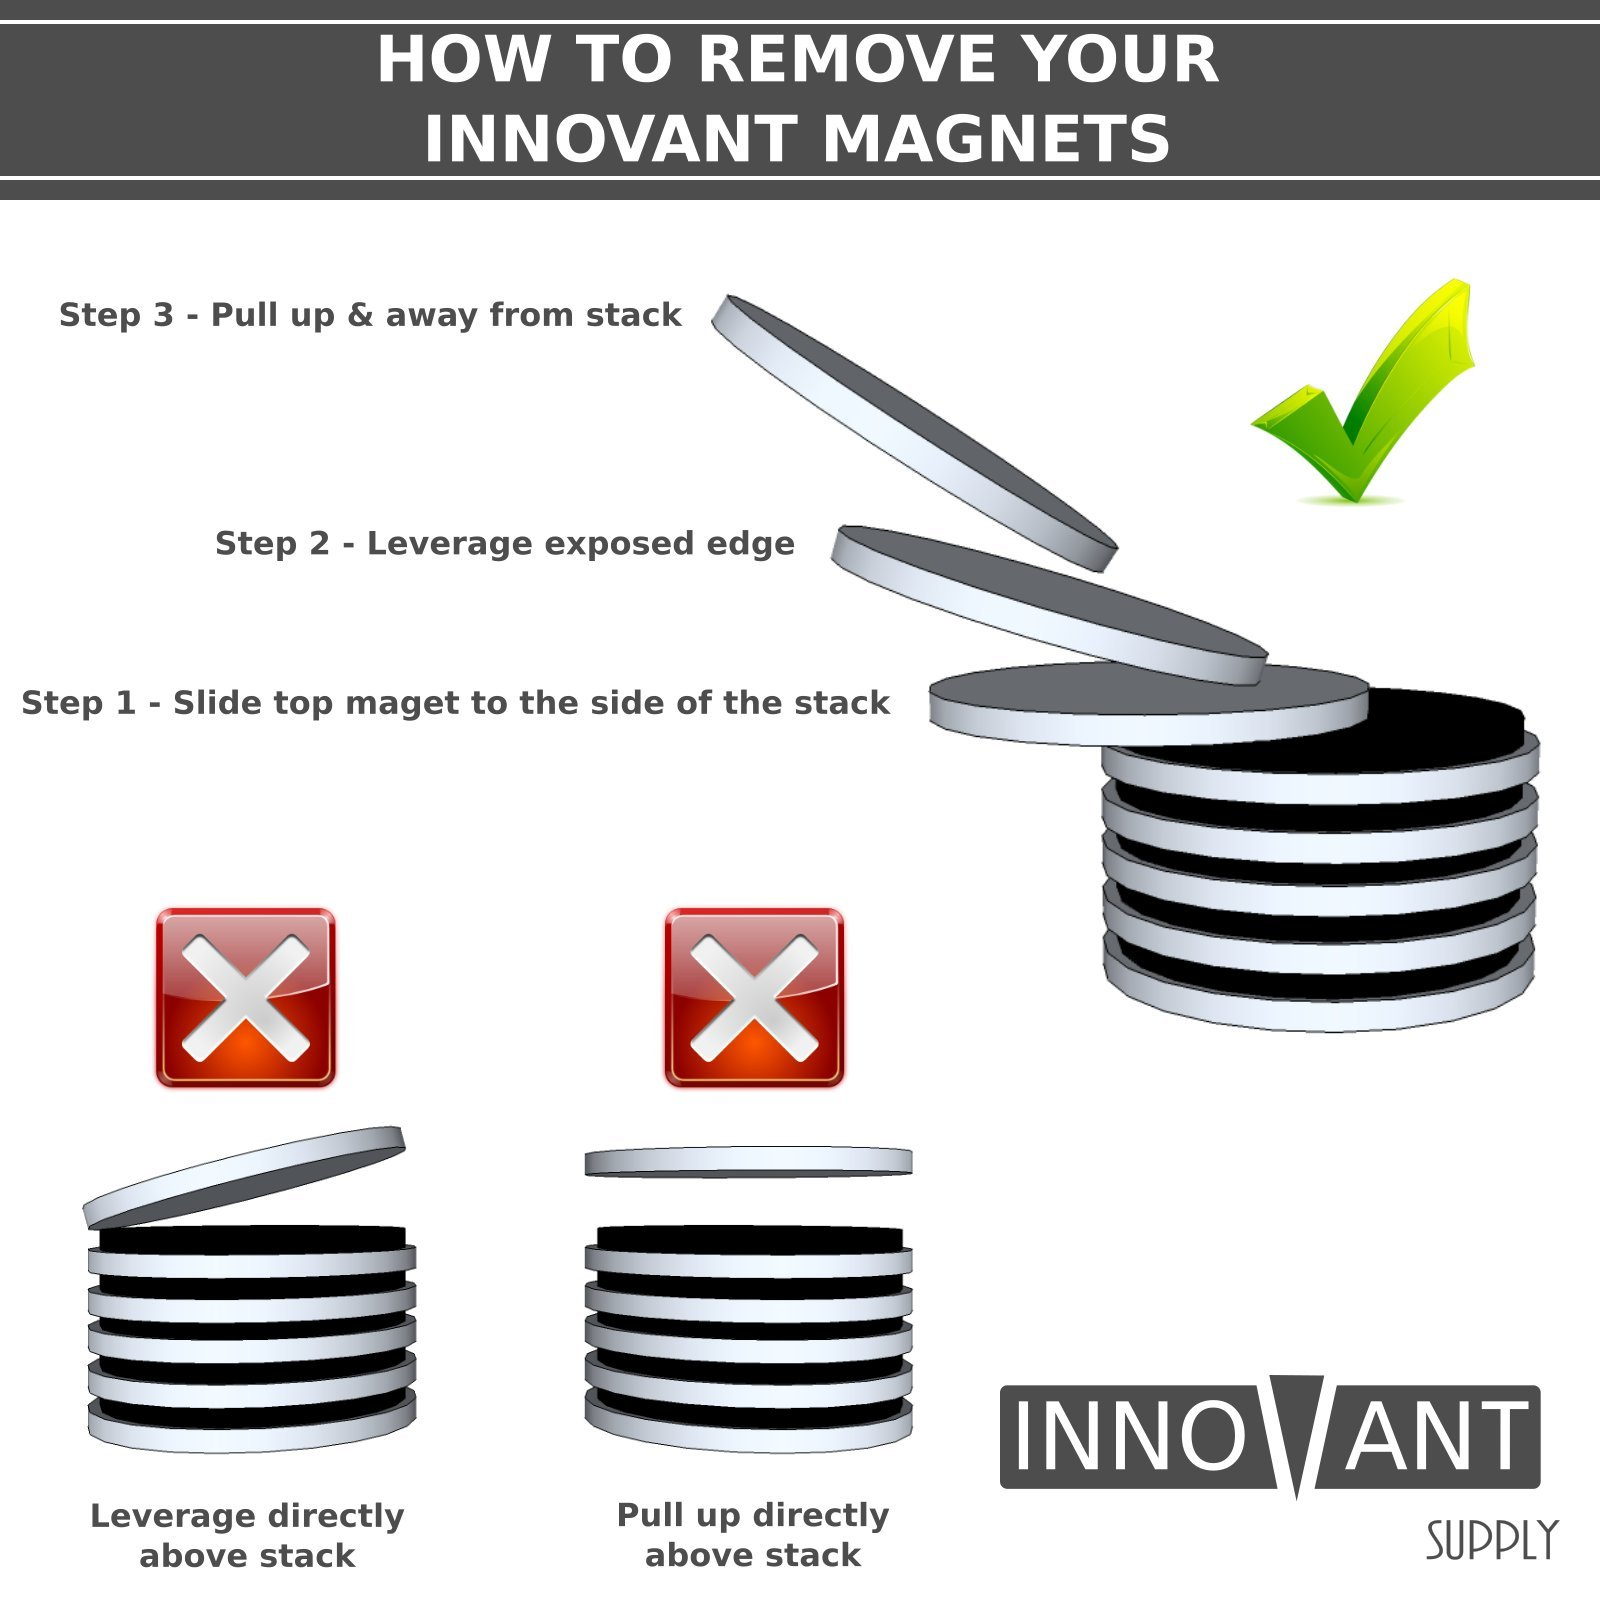 INNOVANT 4 Pack Neodymium Disc Magnets 1 1/2'' d x 1/8'' h N45 Grade Strong Permanent Rare Earth Magnets - Best for DIY Arts & Crafts Projects, School Classroom Science Project & Office or Work Supply by Innovant Supply (Image #4)